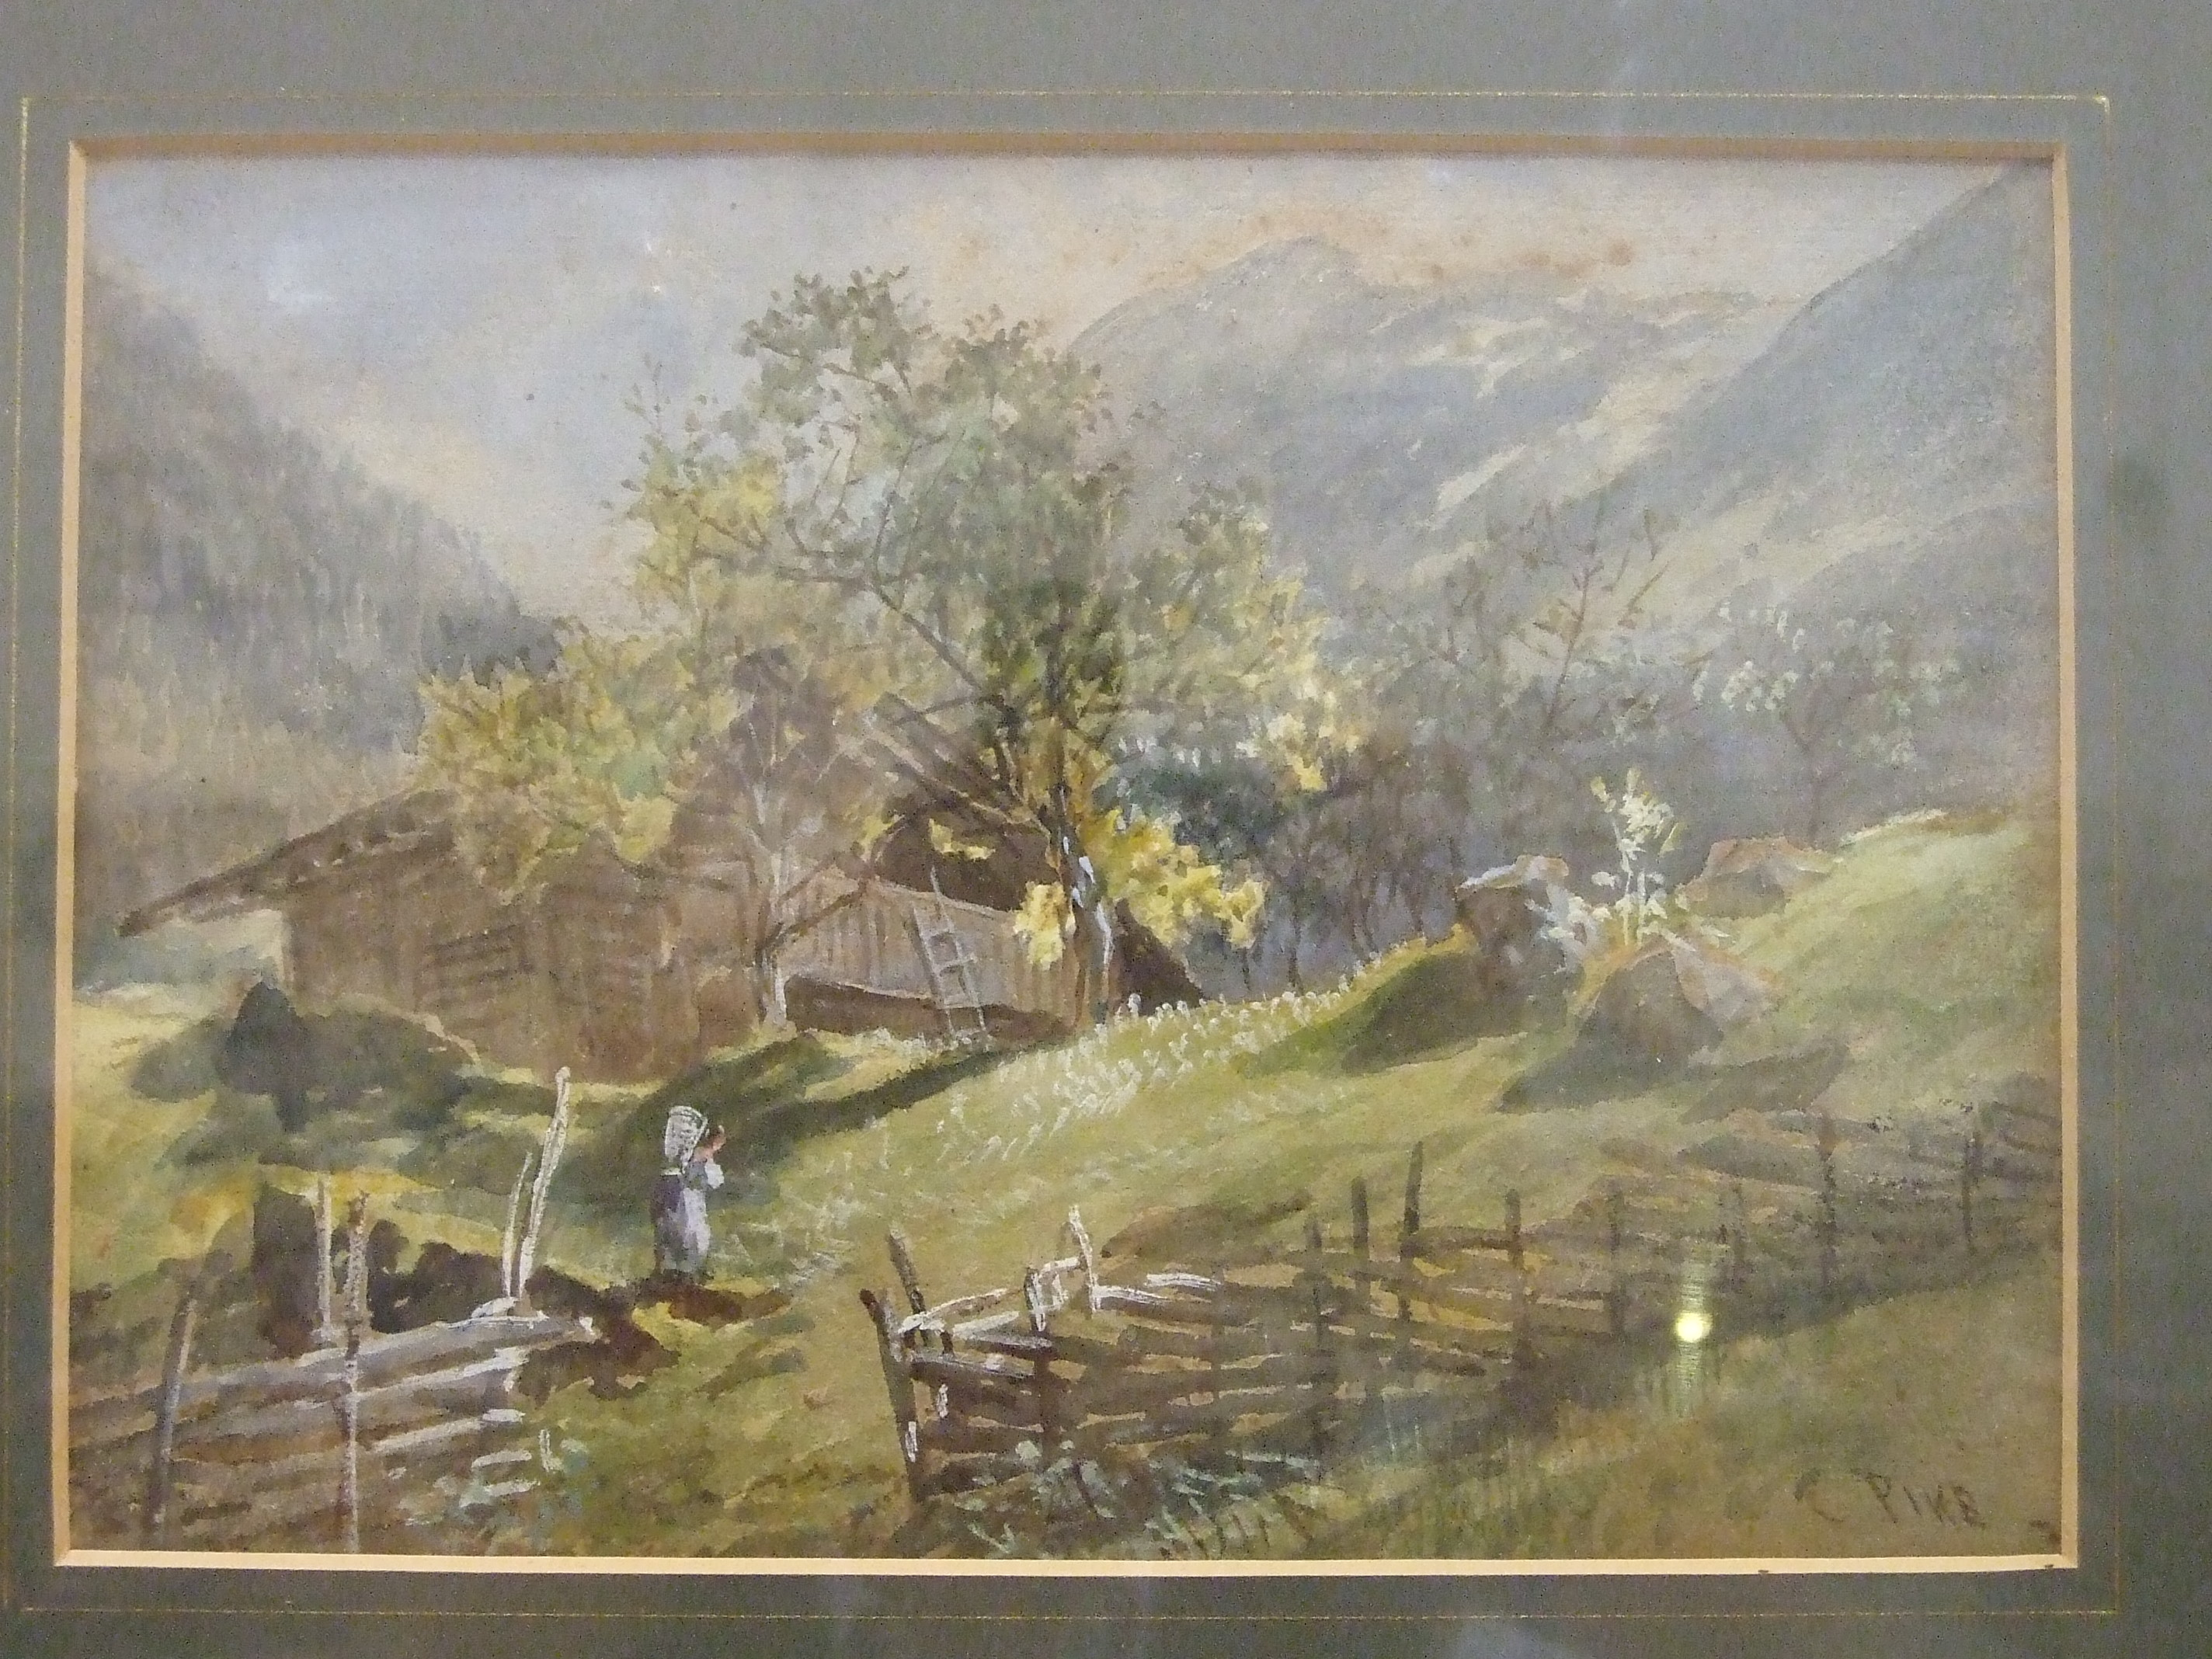 P H Rogers, 'Lakeside Cottage with figure fishing', watercolour, signed and dated1852, 18 x 26cm, ( - Image 2 of 4